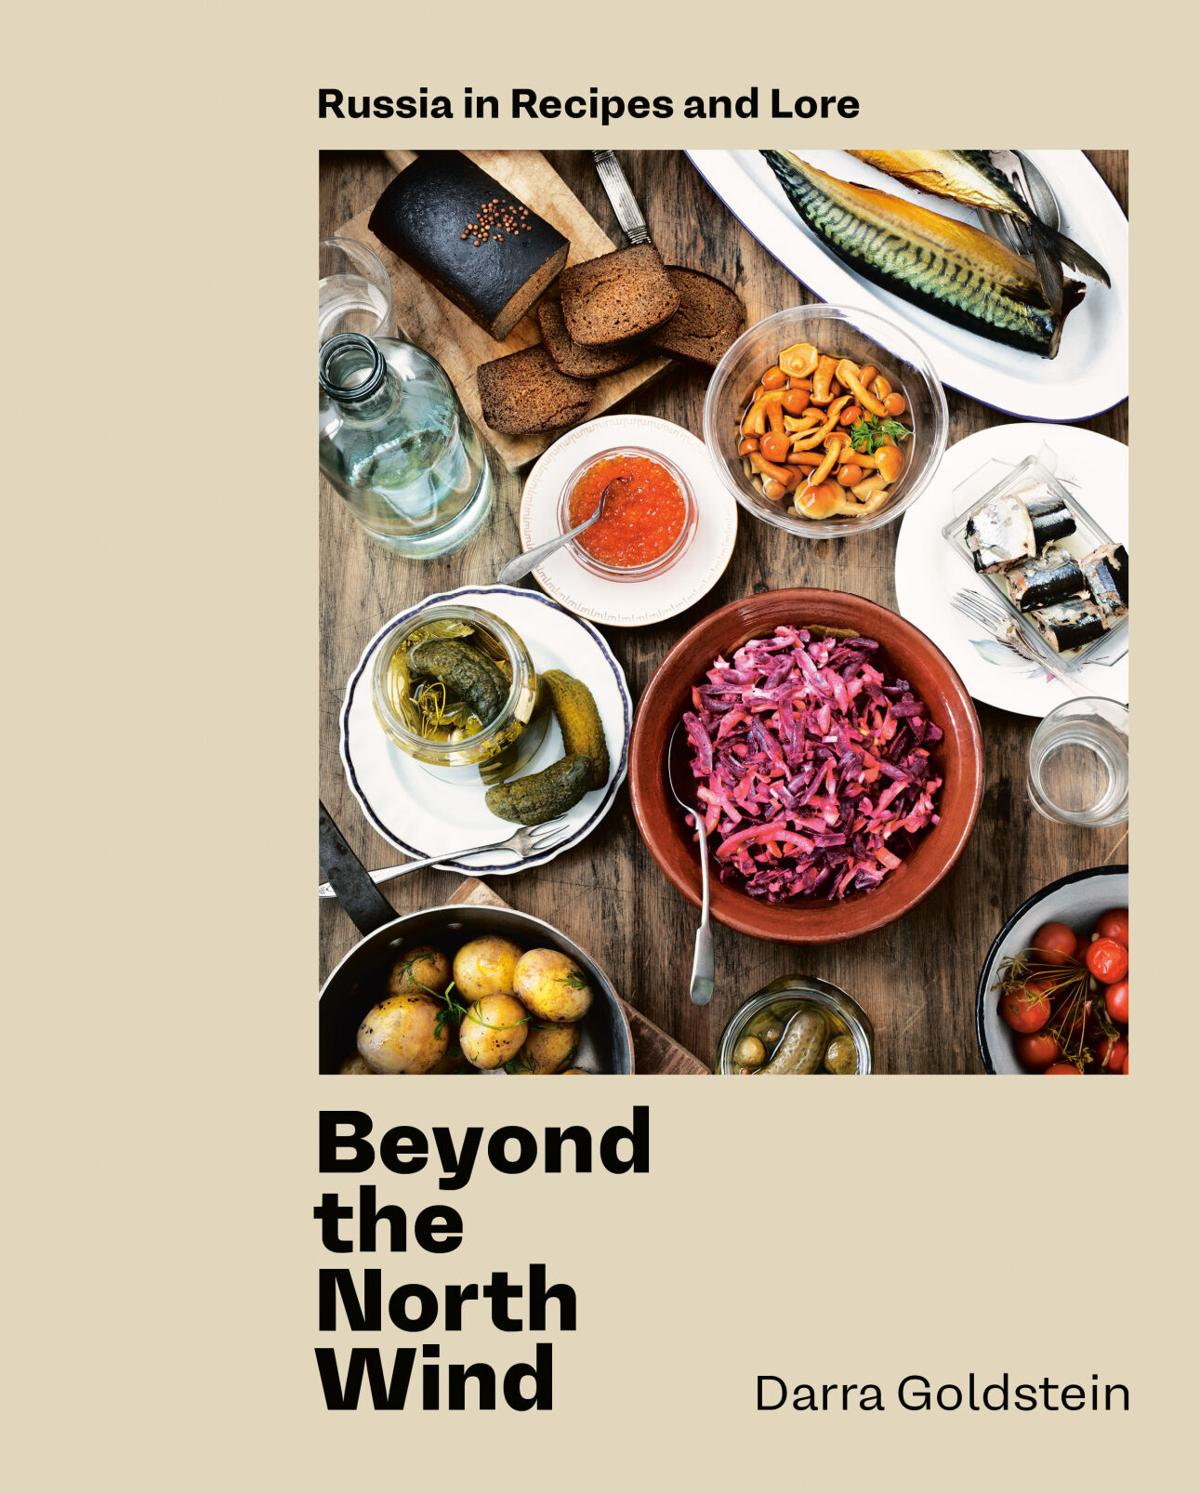 Travel-imbued cookbooks offer up culinary journeys